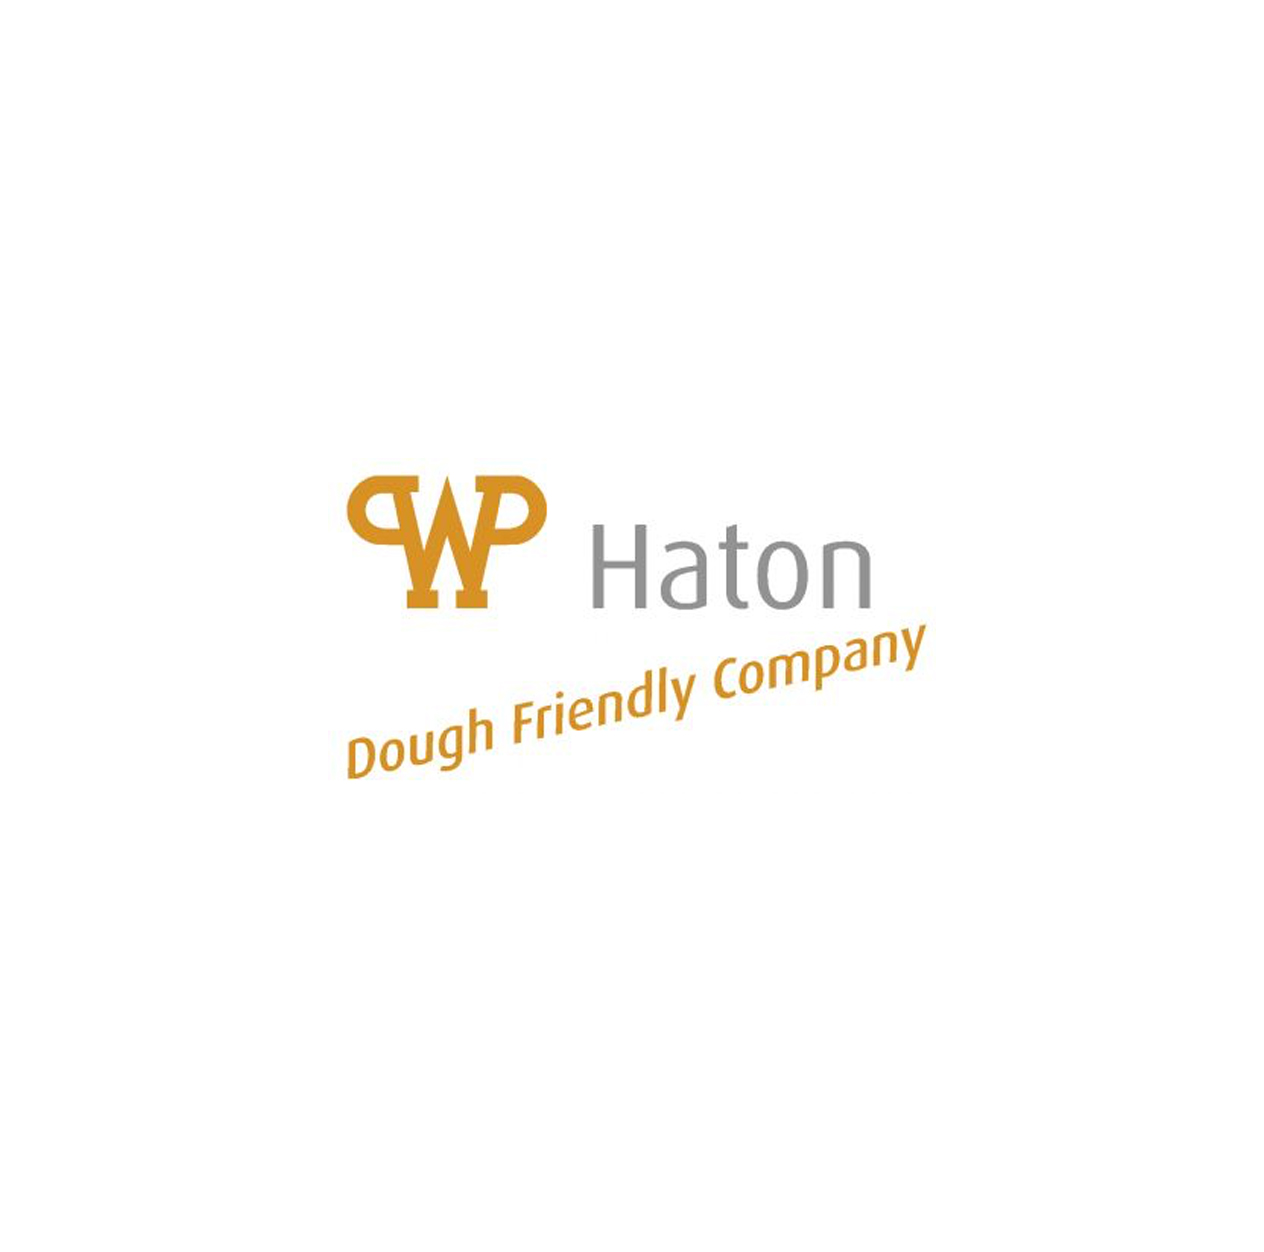 wp haton (ccell).jpg